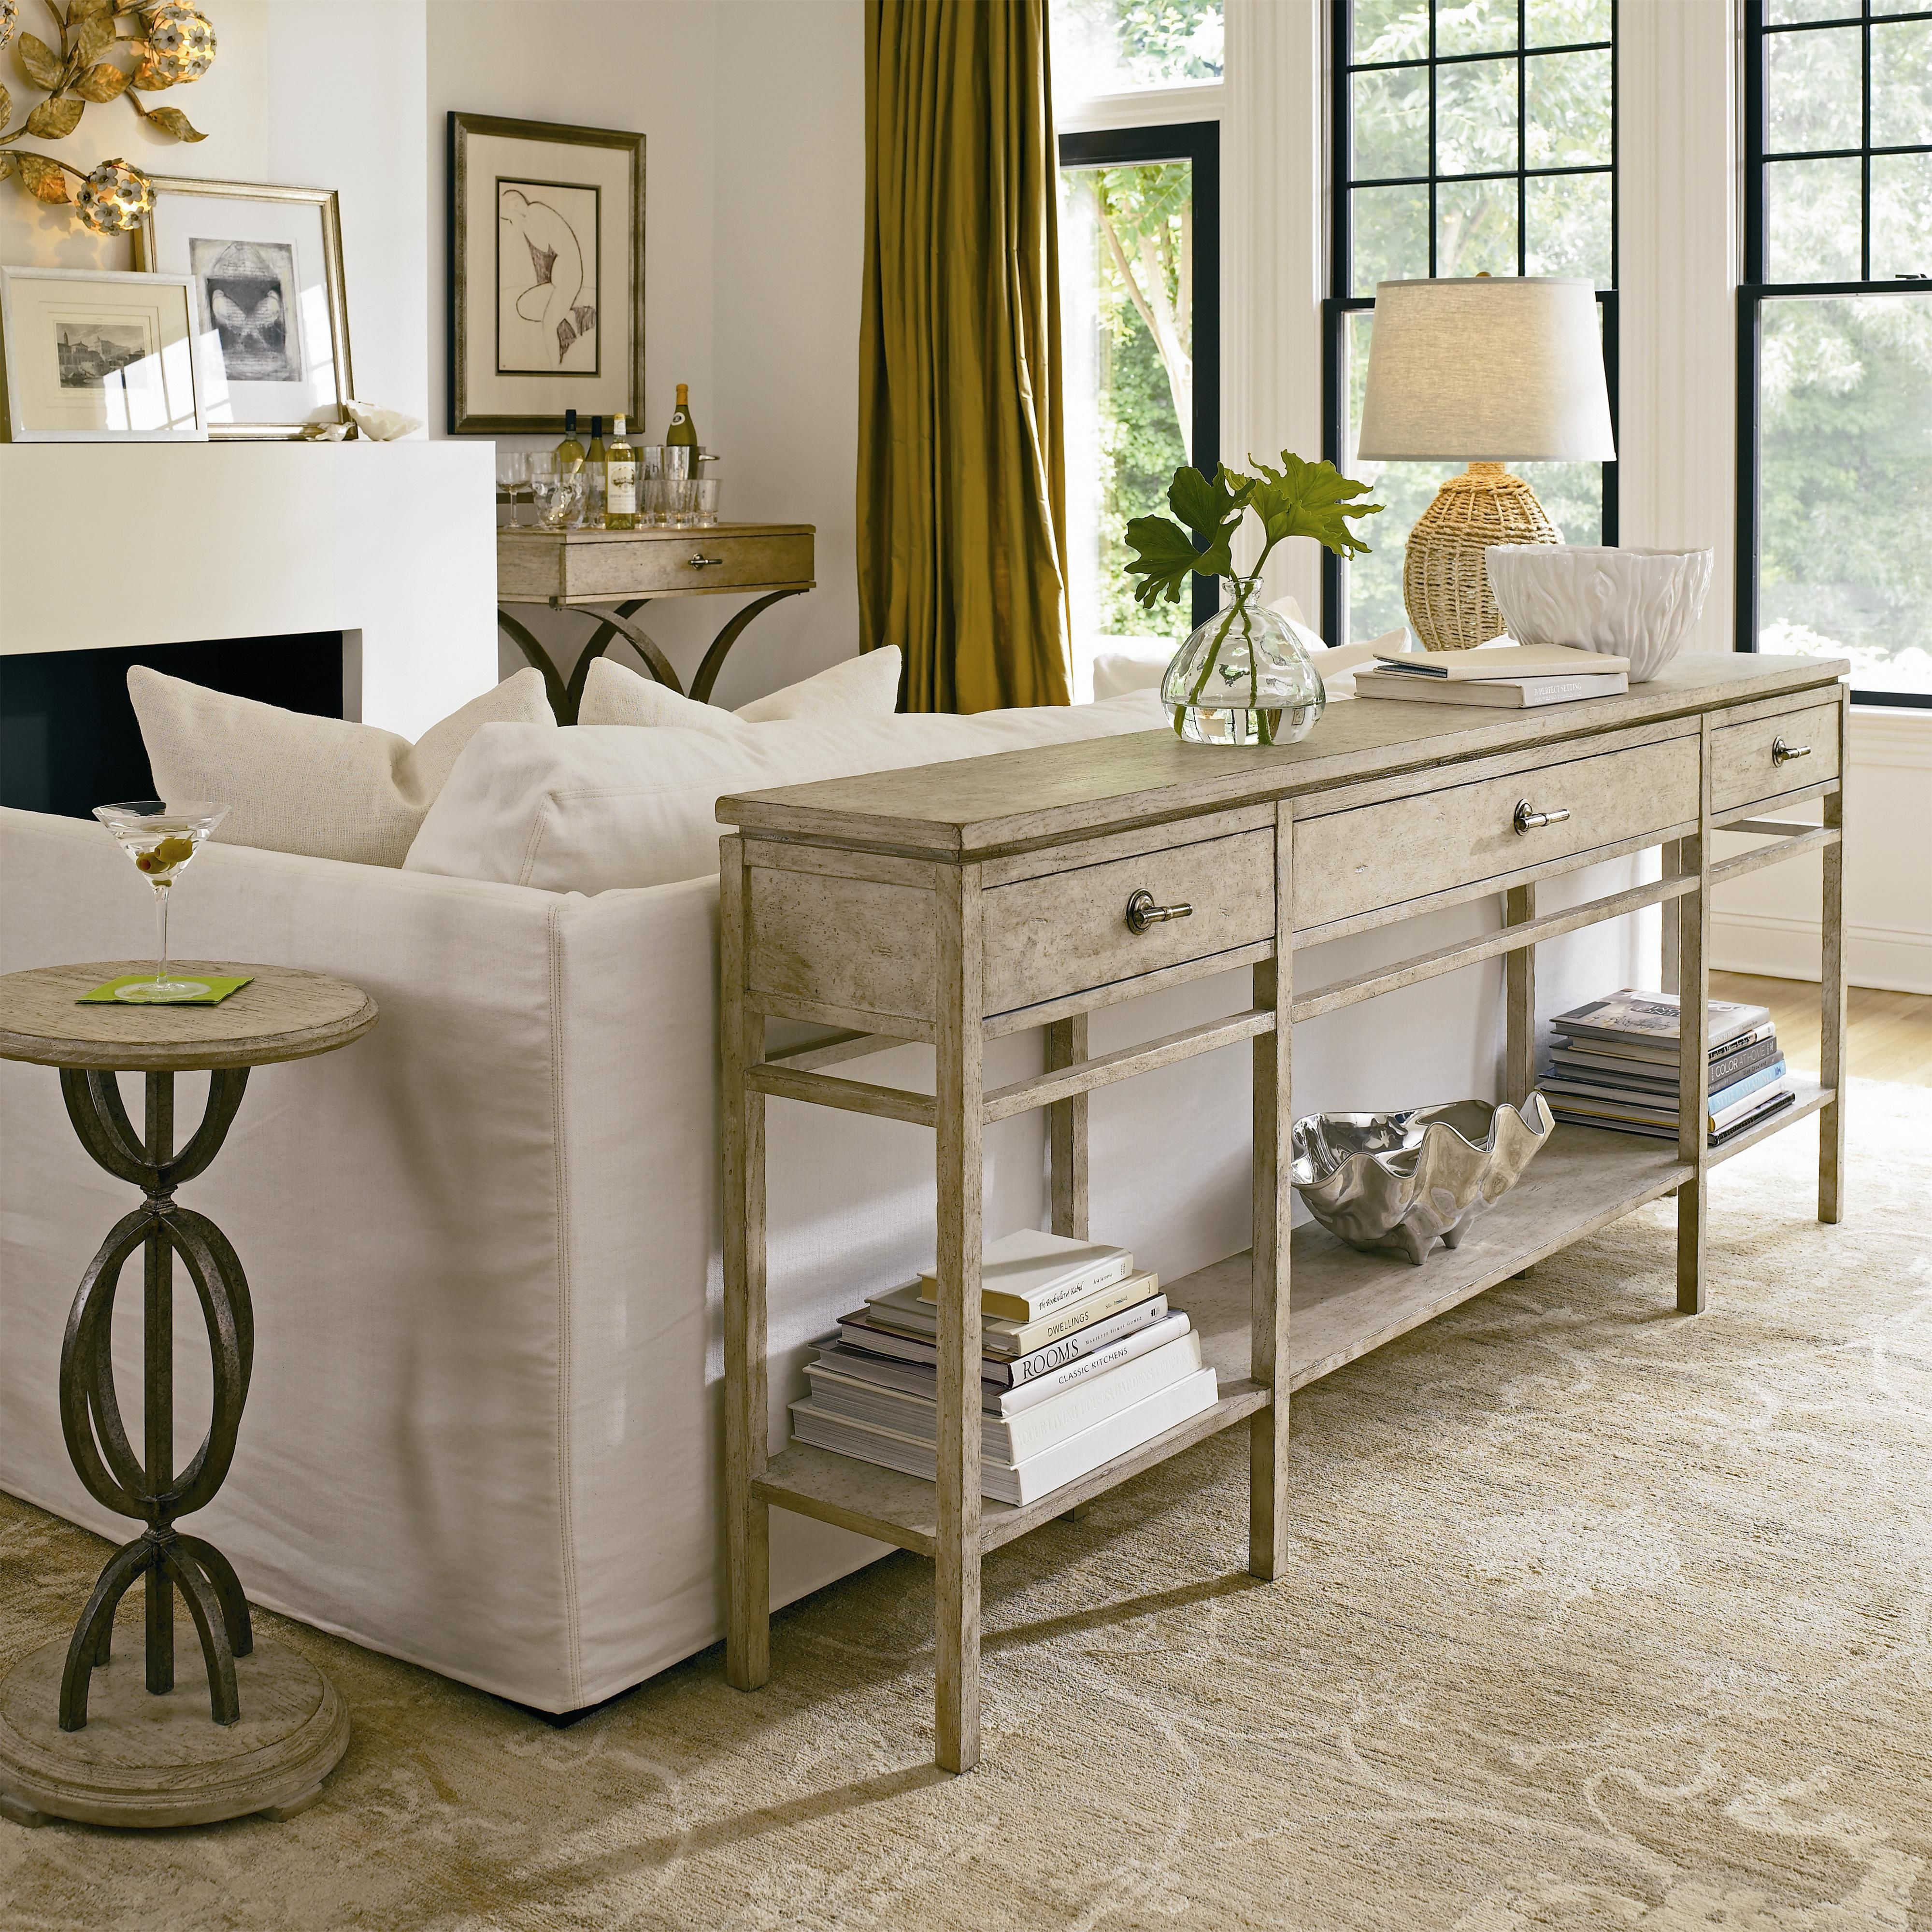 Coastal Chairs Shore Inspired Home Decor Starts With Furnishings A